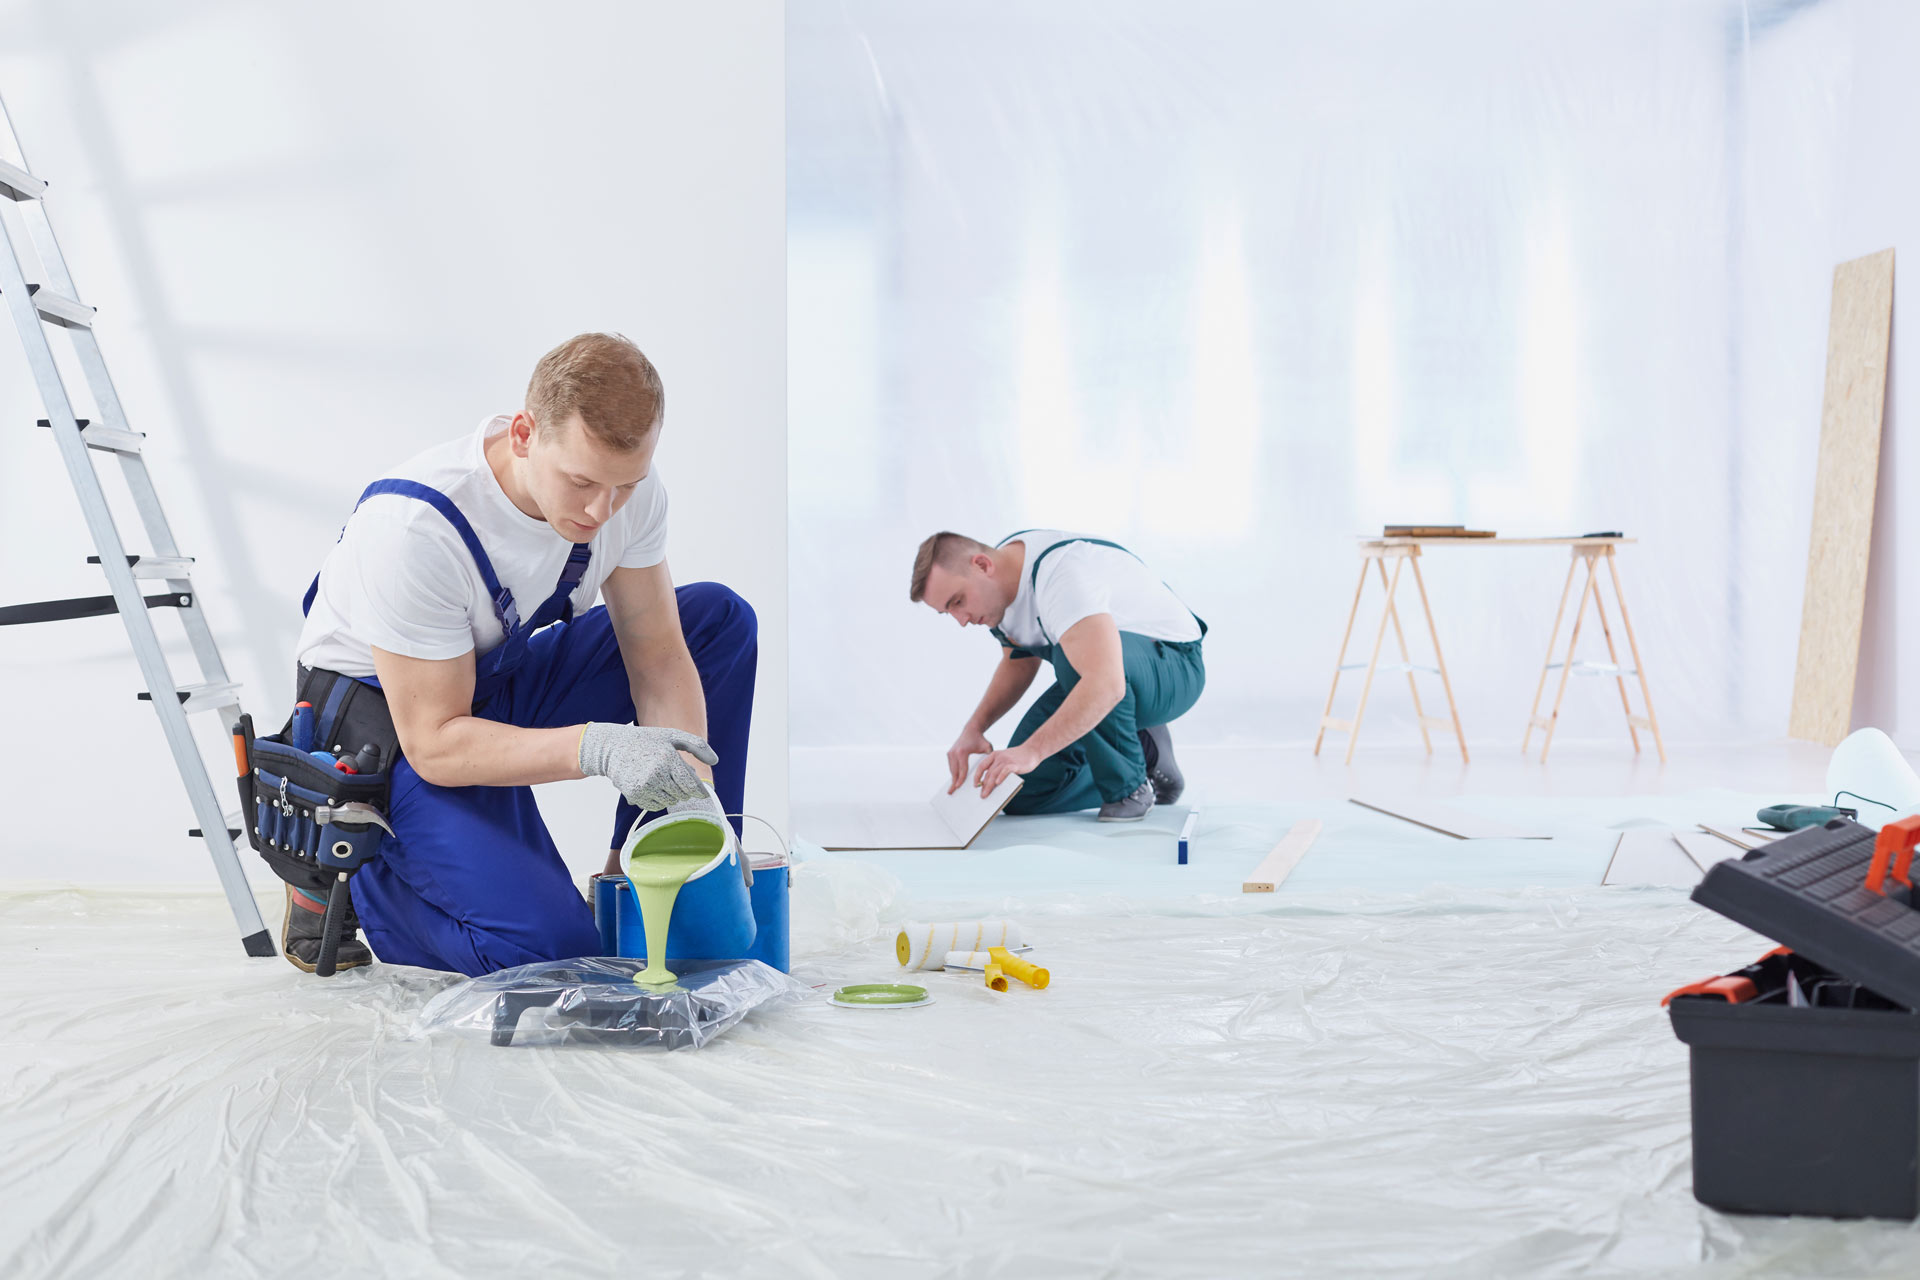 5 Things to Consider When Renovating a Condo